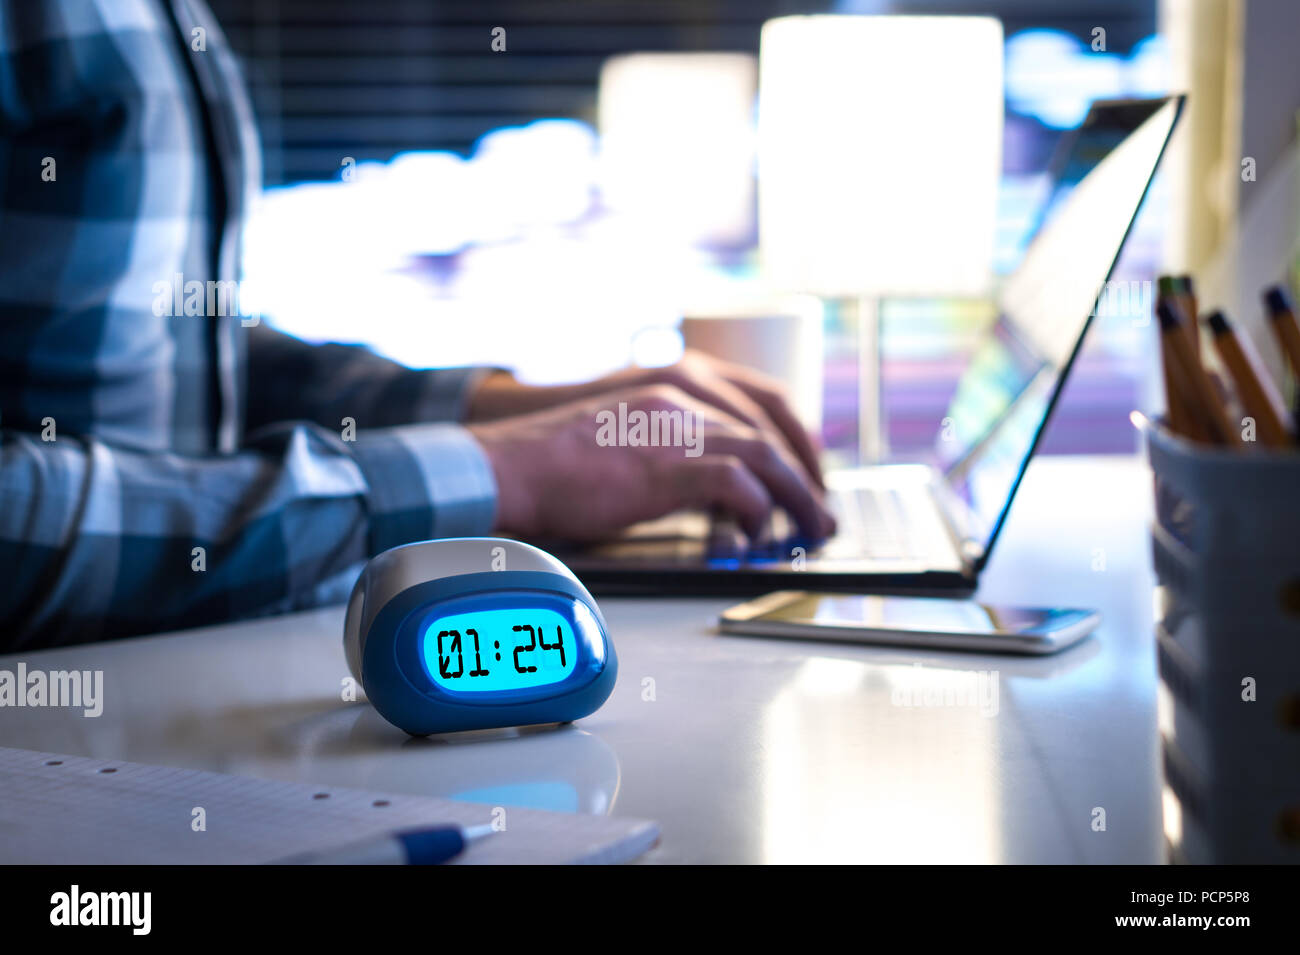 Man working late. Workaholic or being behind schedule concept. Business person in modern office building or home at night using laptop. - Stock Image